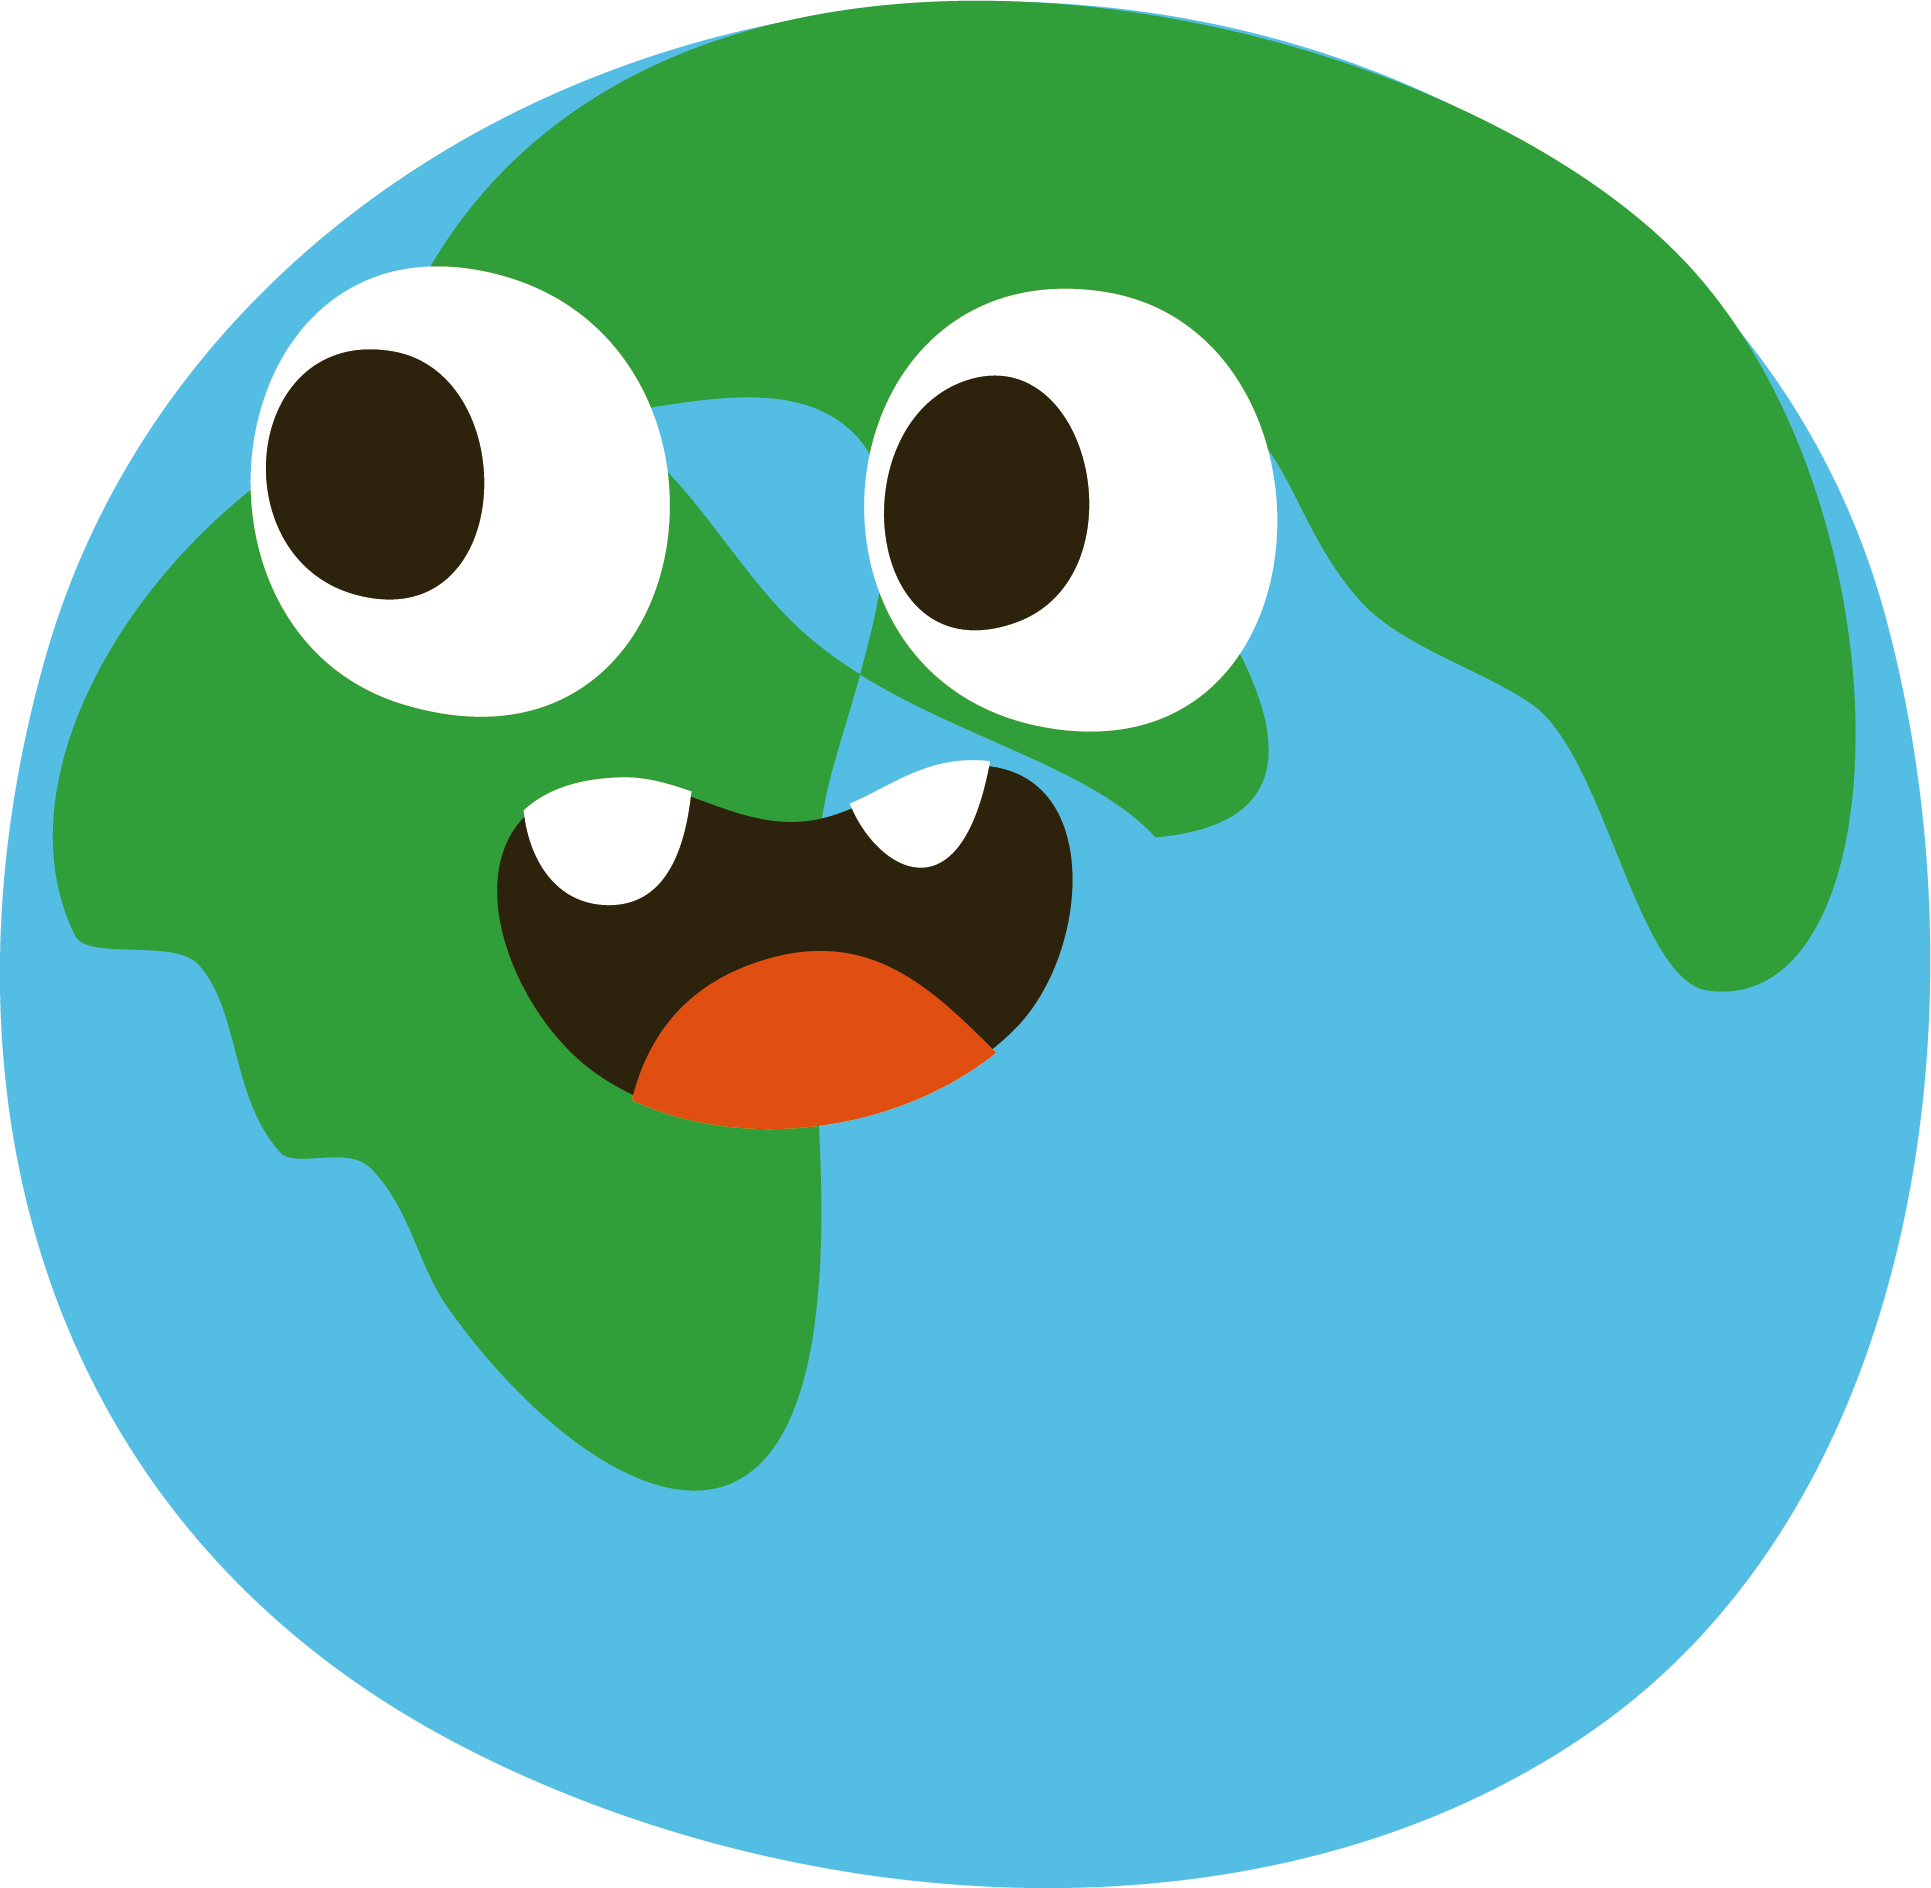 Planets Clipart Green Planet Planets Green Planet